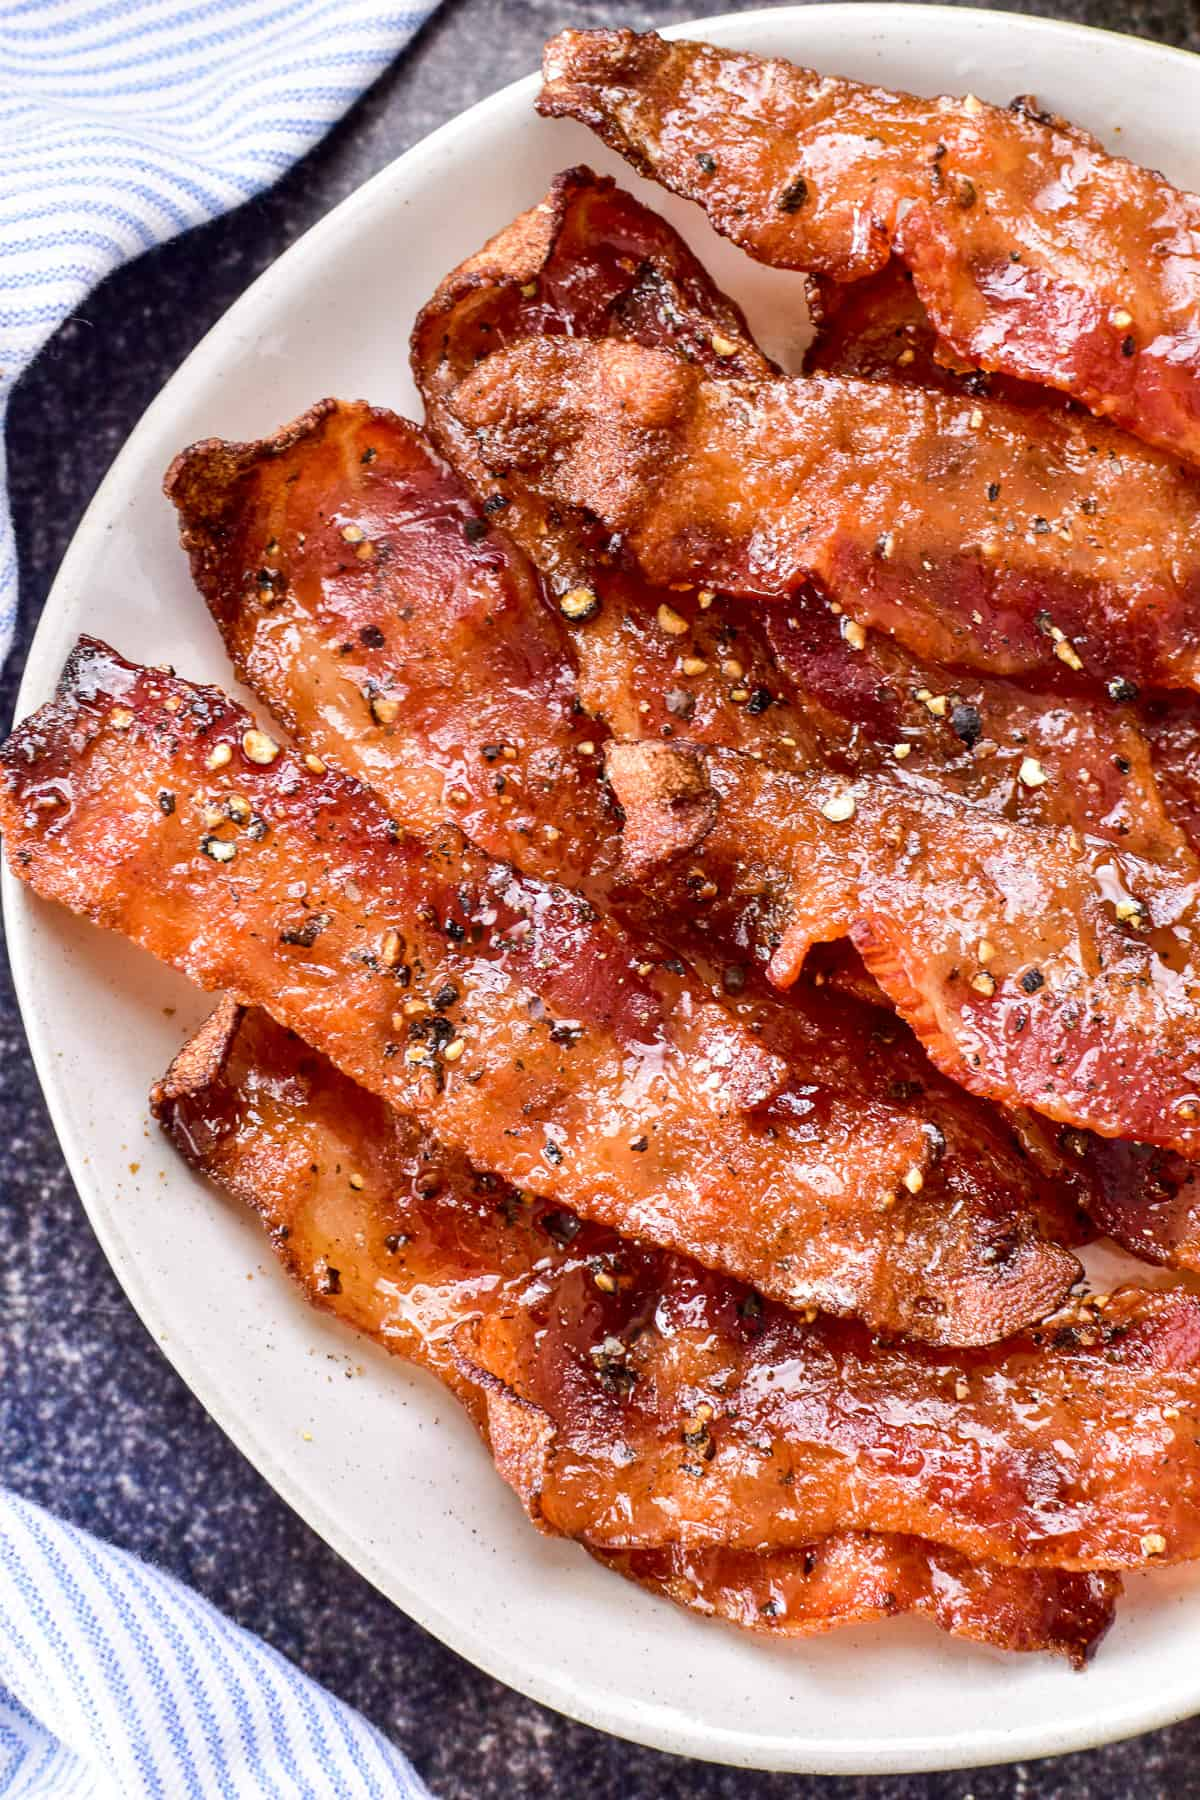 Candied Bacon on a white plate